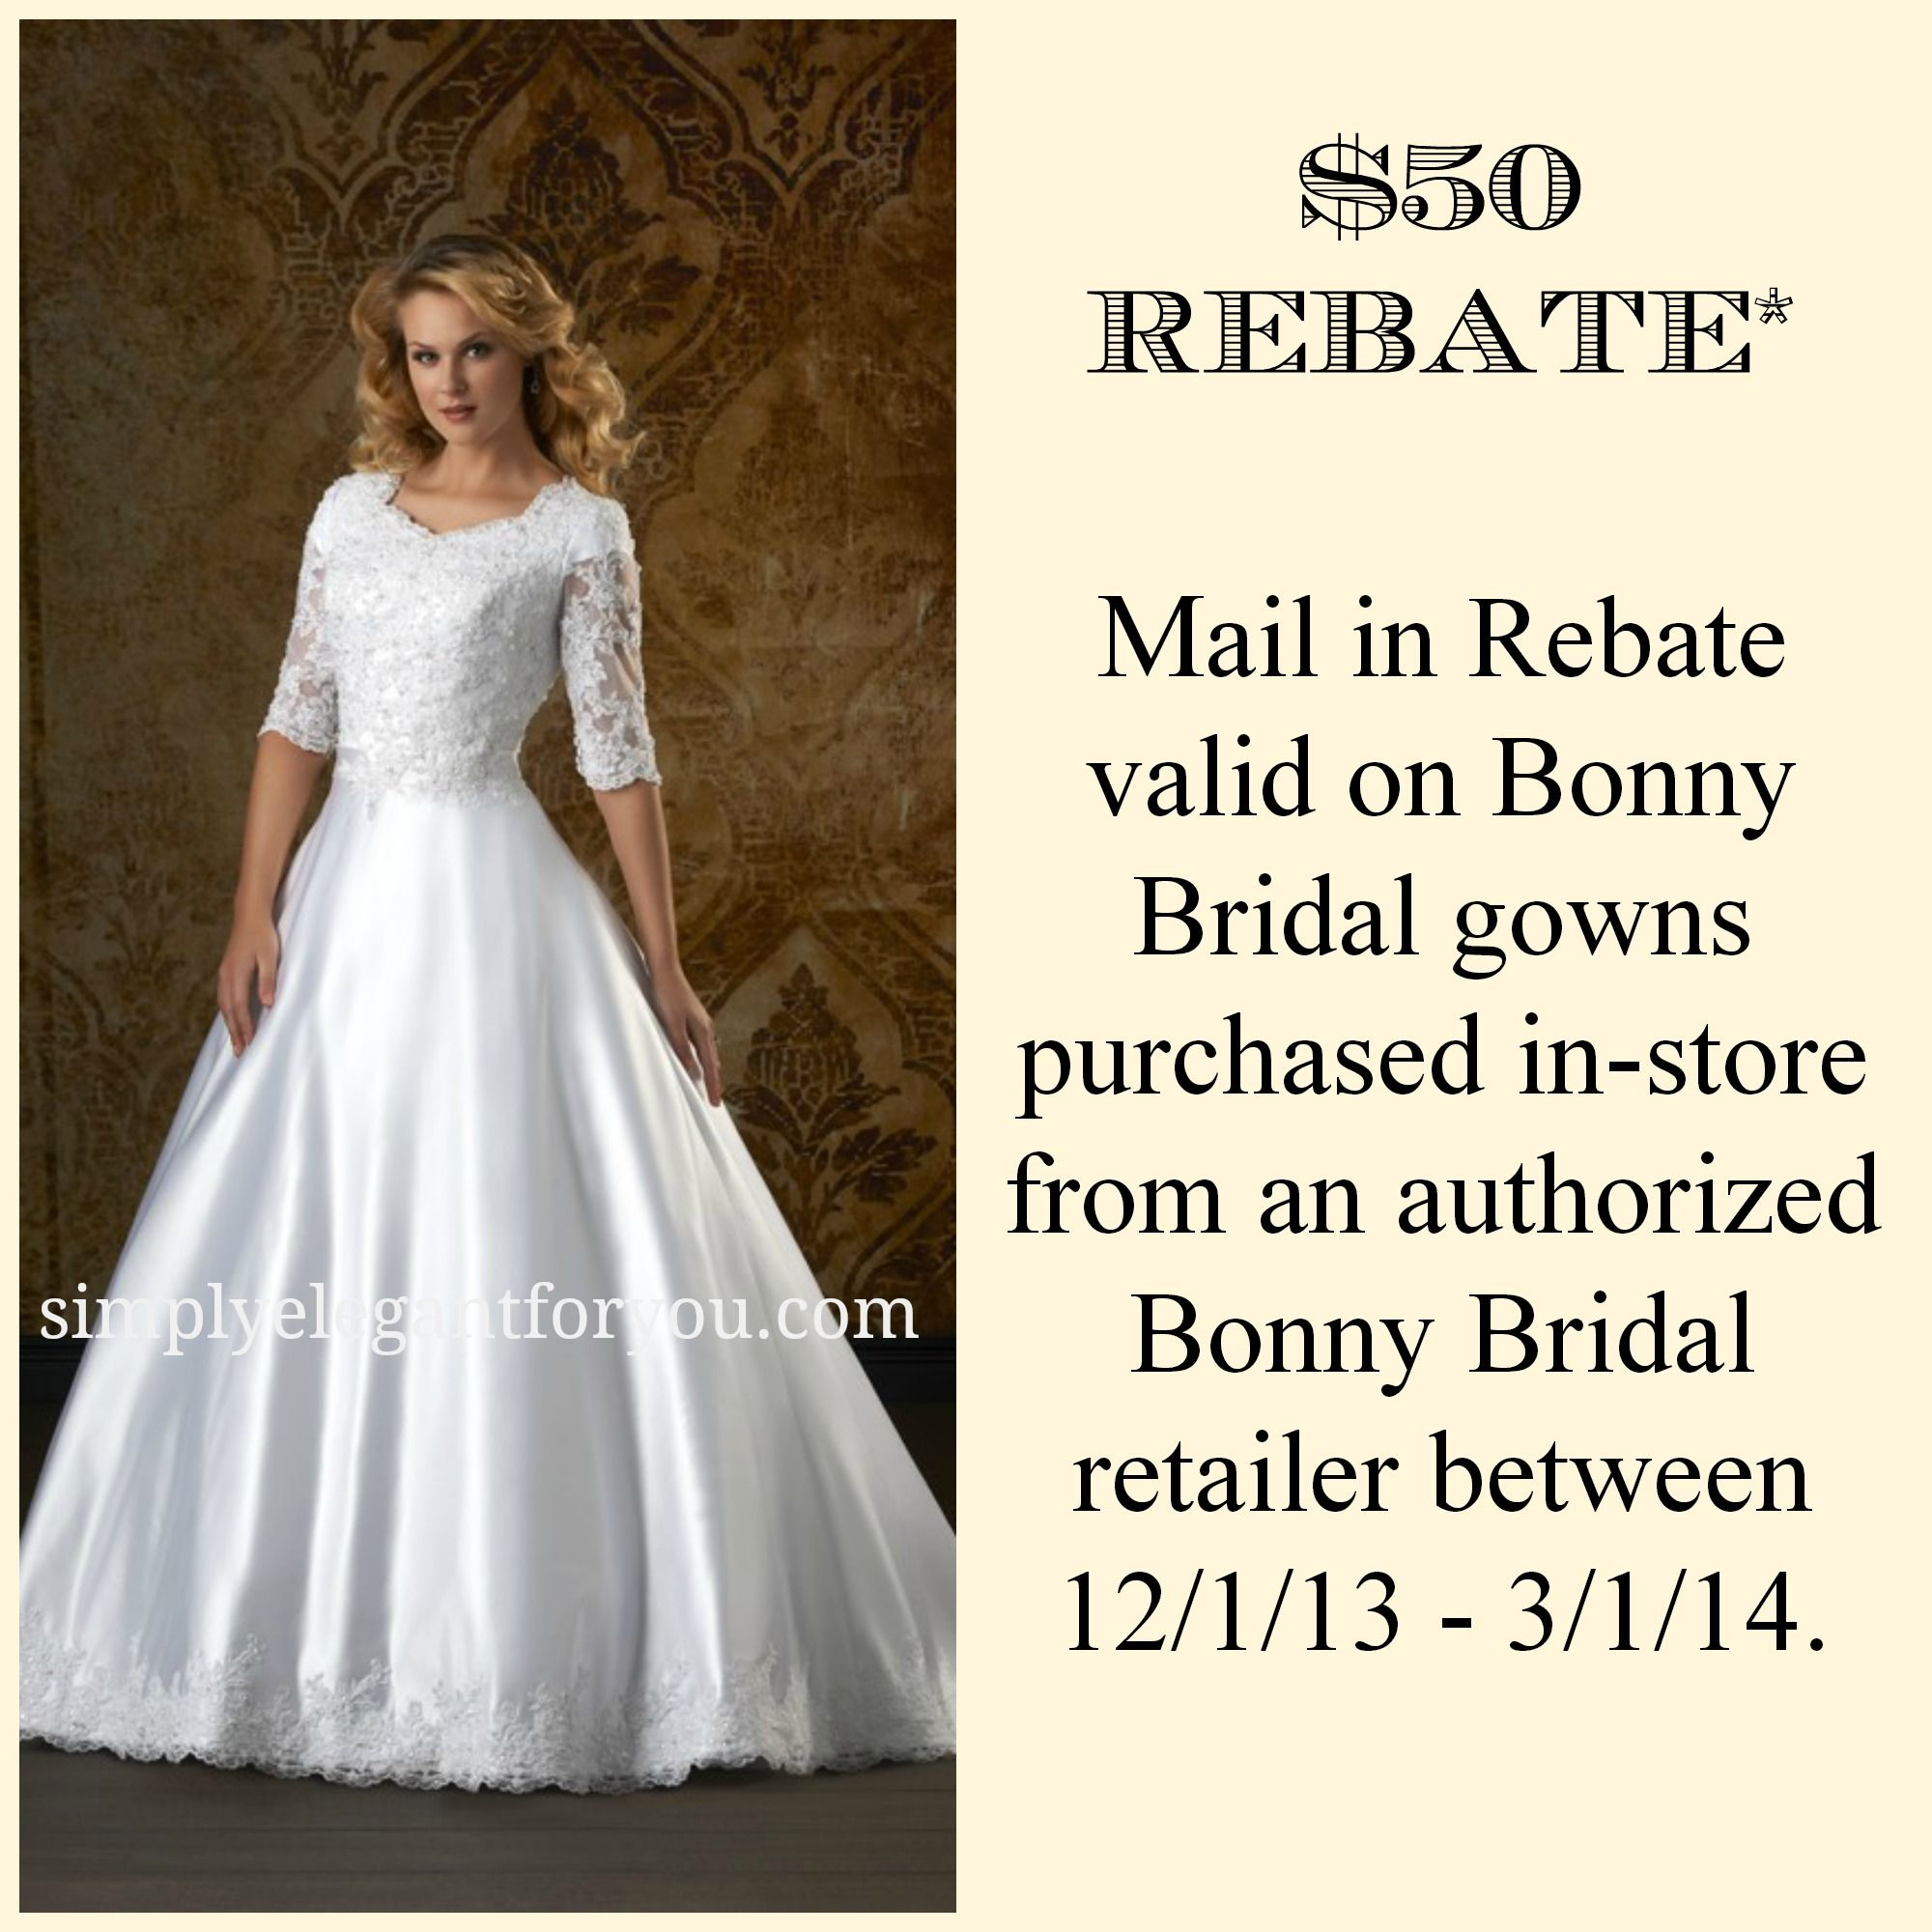 rebate modest wedding dress sleeves lds apostolic